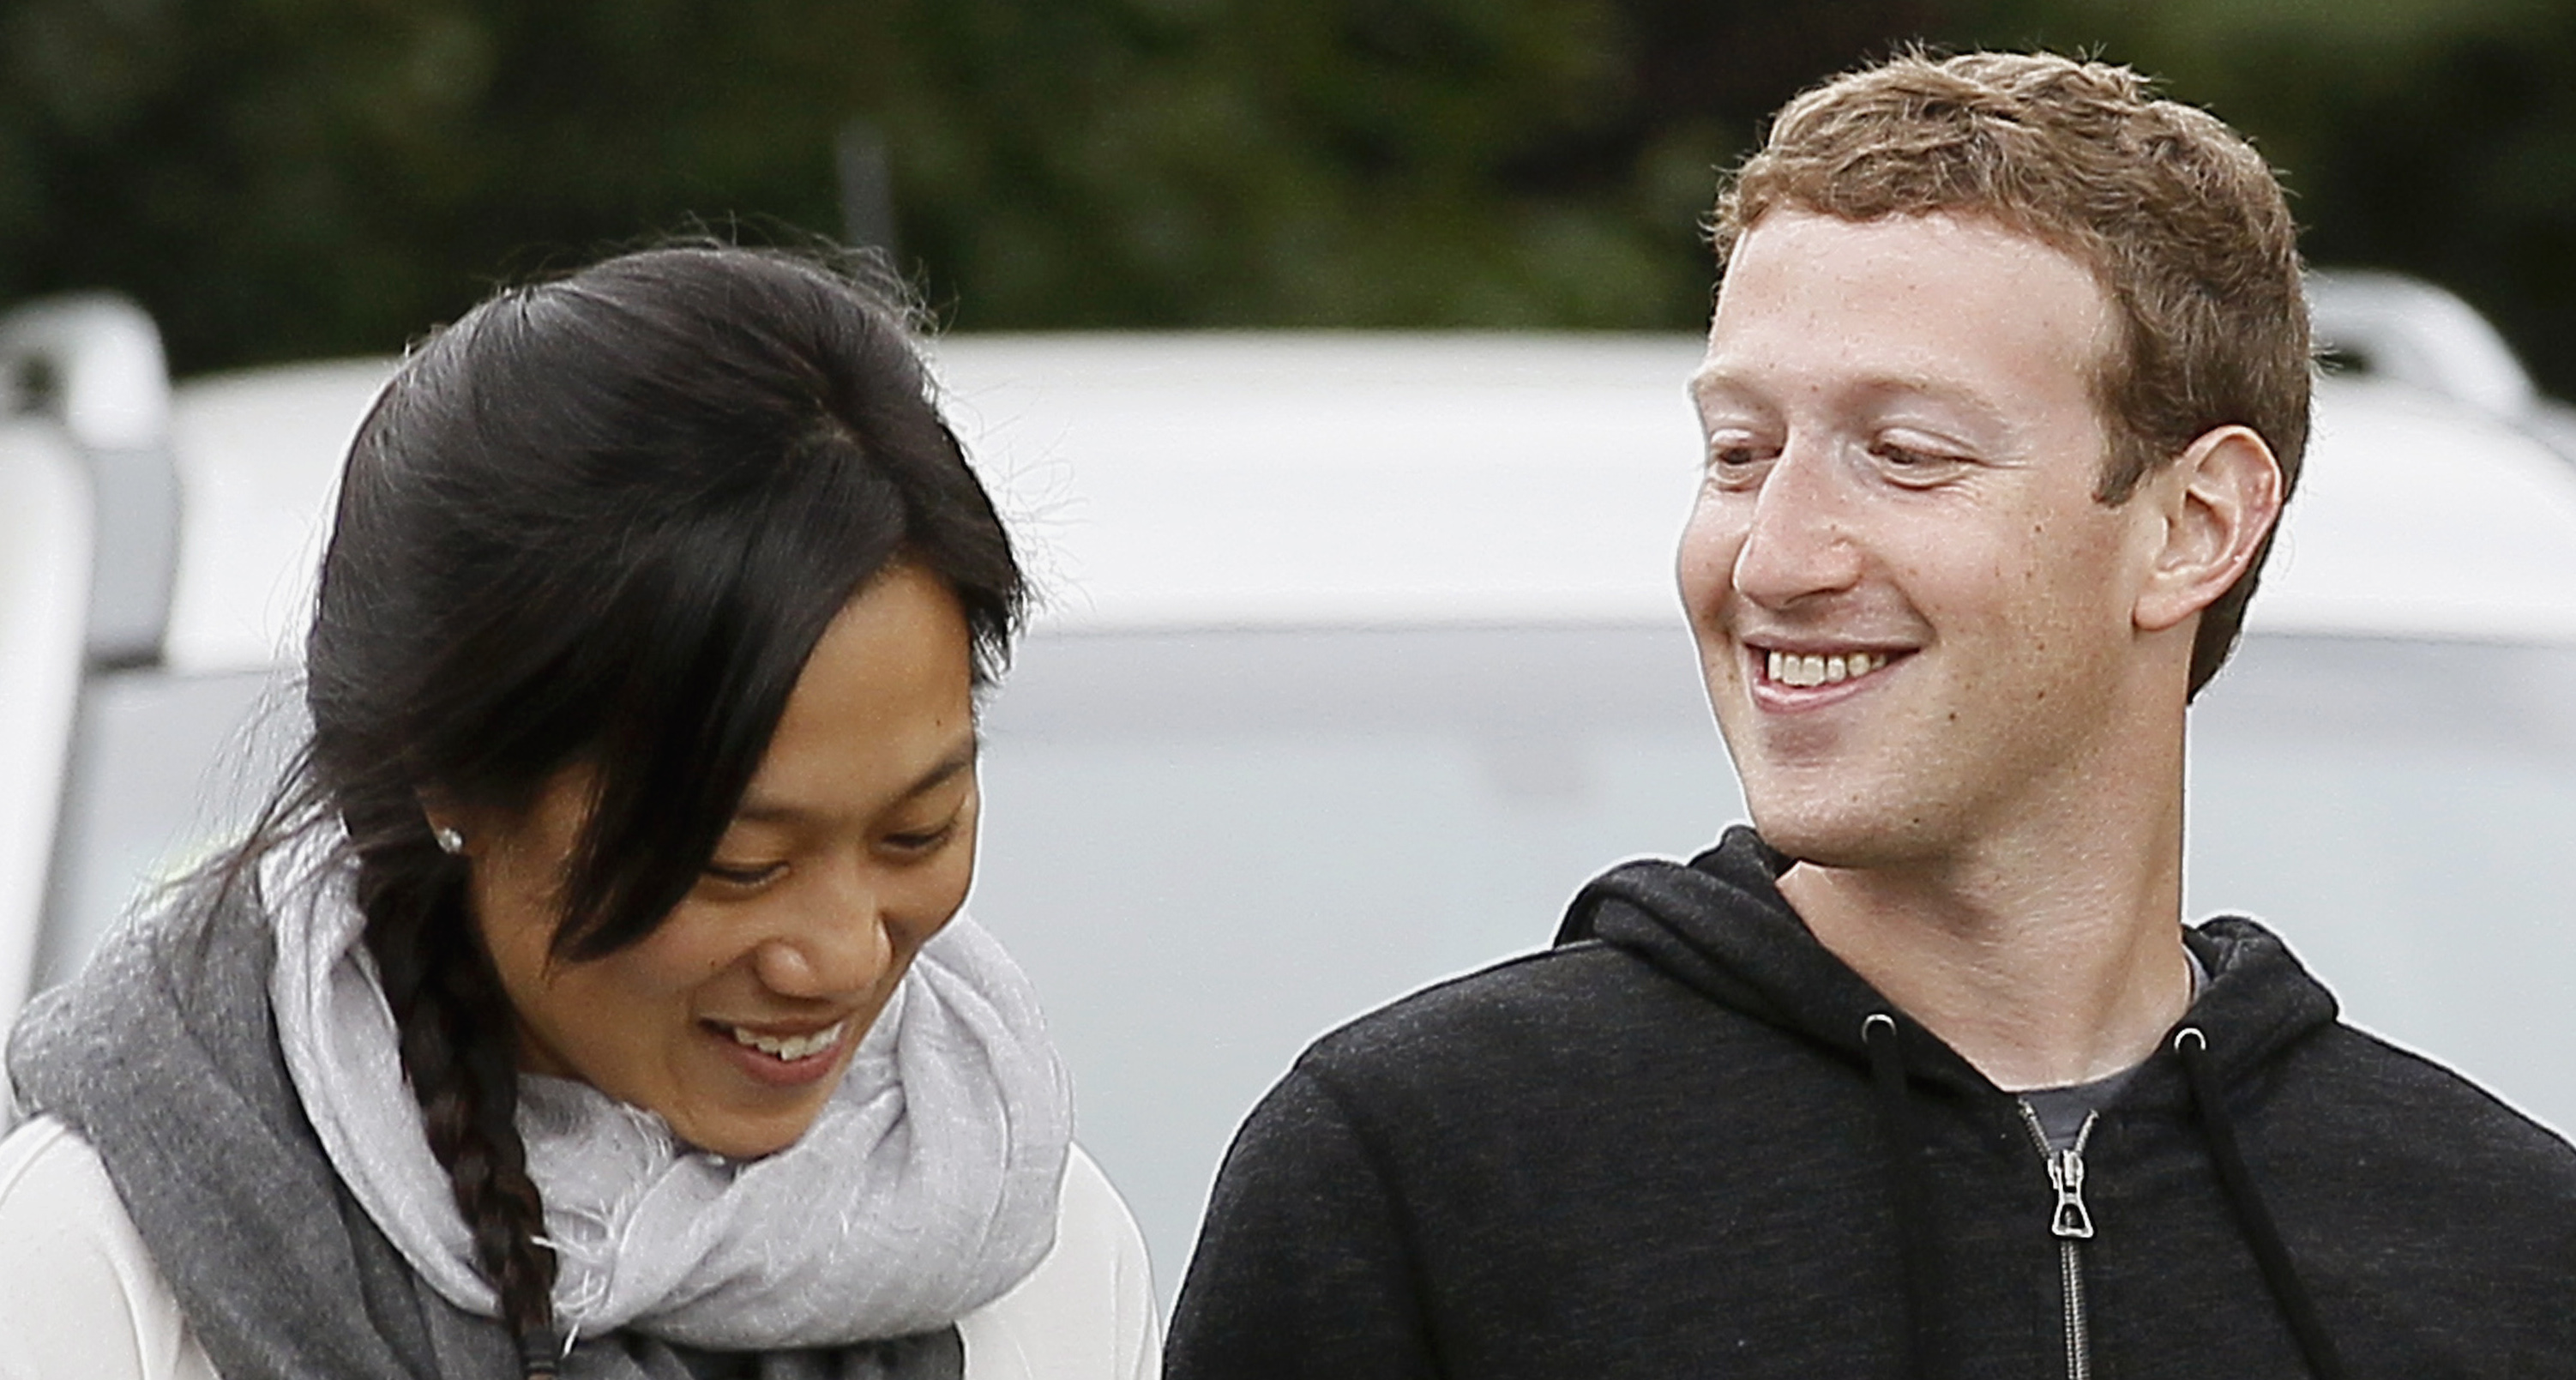 Facebook CEO Mark Zuckerberg walks with his wife Priscilla Chan at the annual Allen and Co. conference at the Sun Valley, Idaho Resort July 11, 2013.  REUTERS/Rick Wilking (UNITED STATES - Tags: BUSINESS) - RTX11KC3